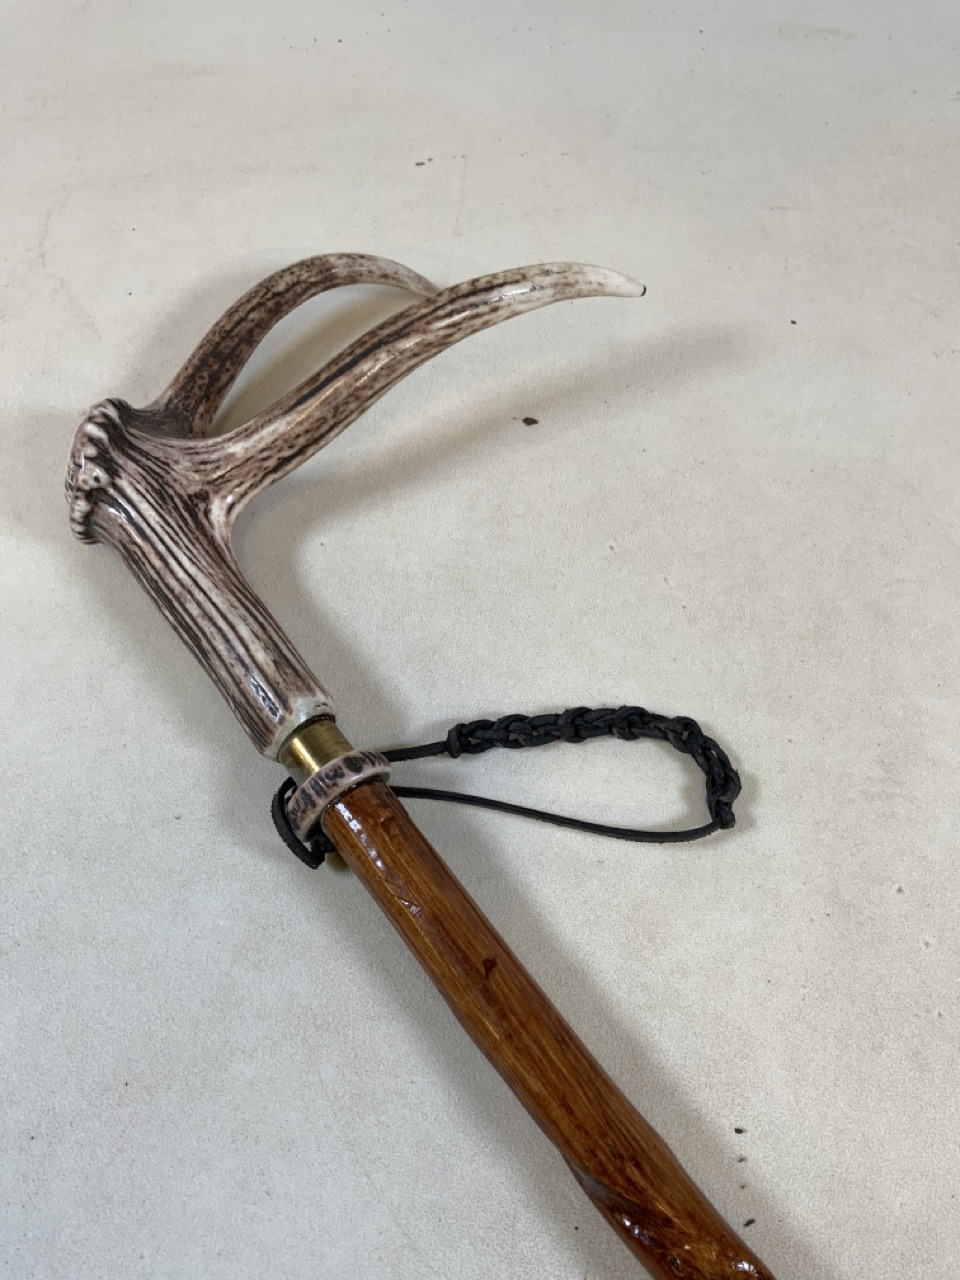 A walking stick - hazel with honeysuckle twist with a polished red deer antler handle with brass